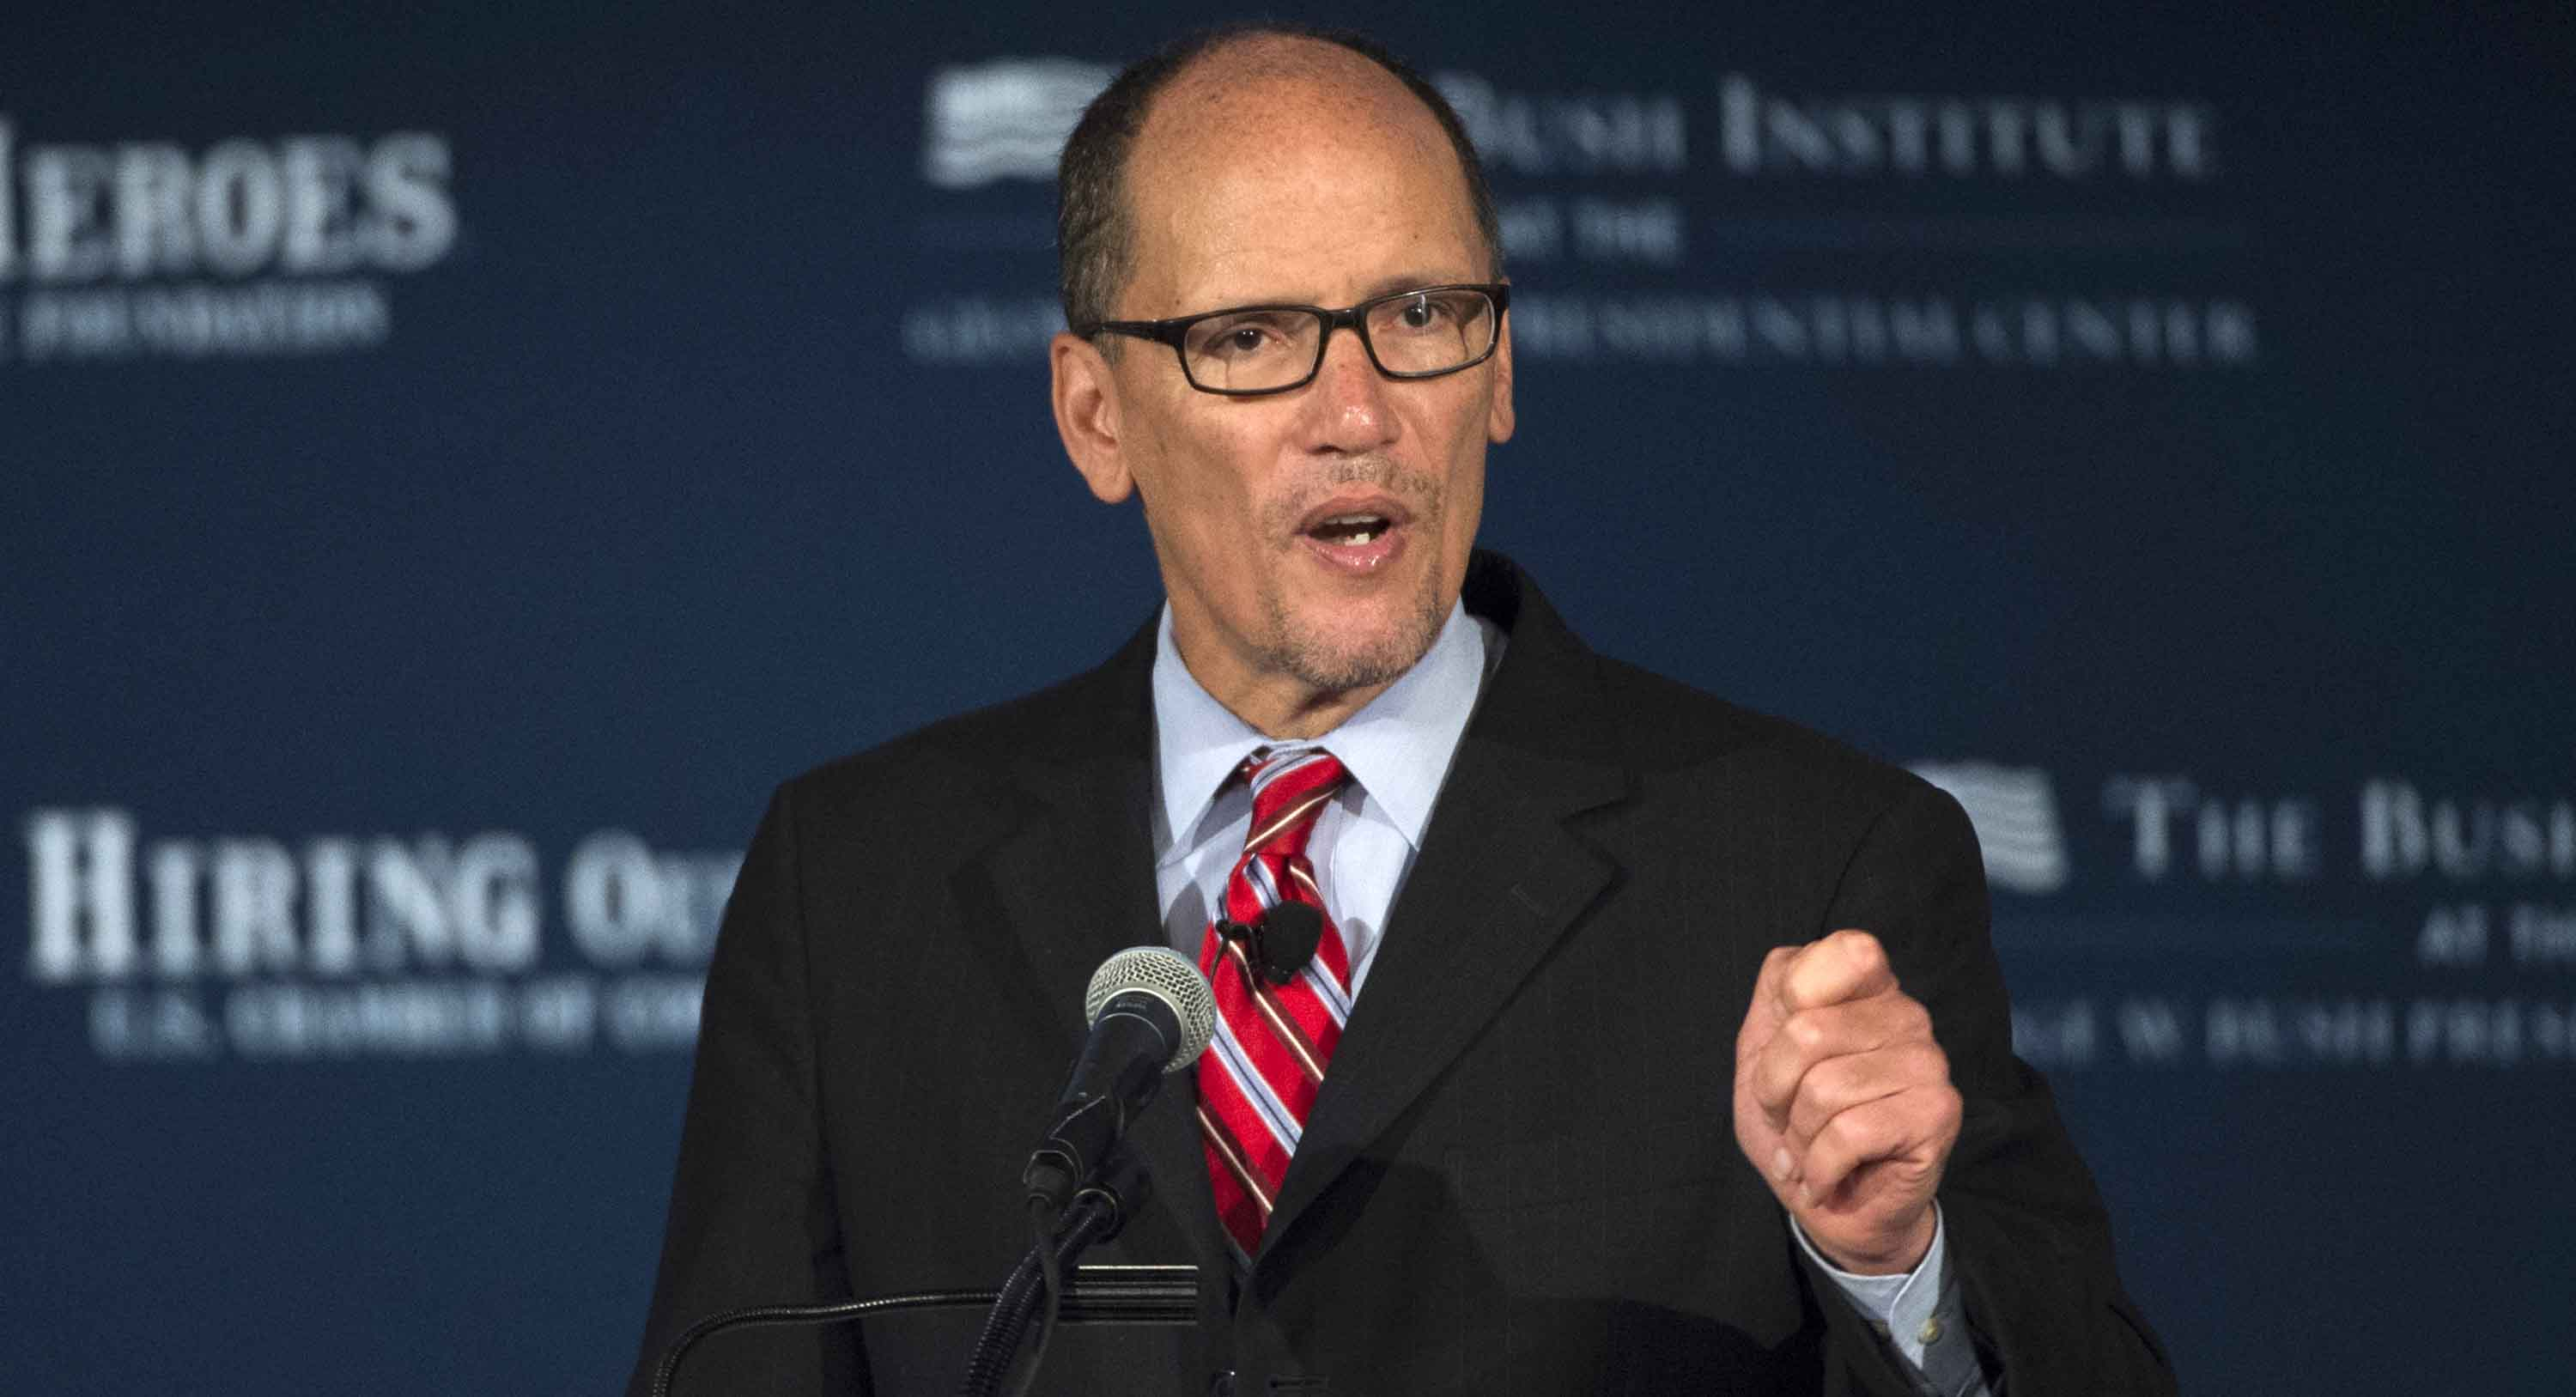 Labor Secretary Thomas Perez speaks at the U.S. Chamber of Commerce Foundation's Hiring Our Heroes program and the George W. Bush Institute's Military Service Initiative national summit, Wednesday, June 24, 2015, at the U.S. Chamber of Commerce in Washington. The summit  focuses on creating employment opportunities for post-9/11 veterans and military families.  (AP Photo/Molly Riley)